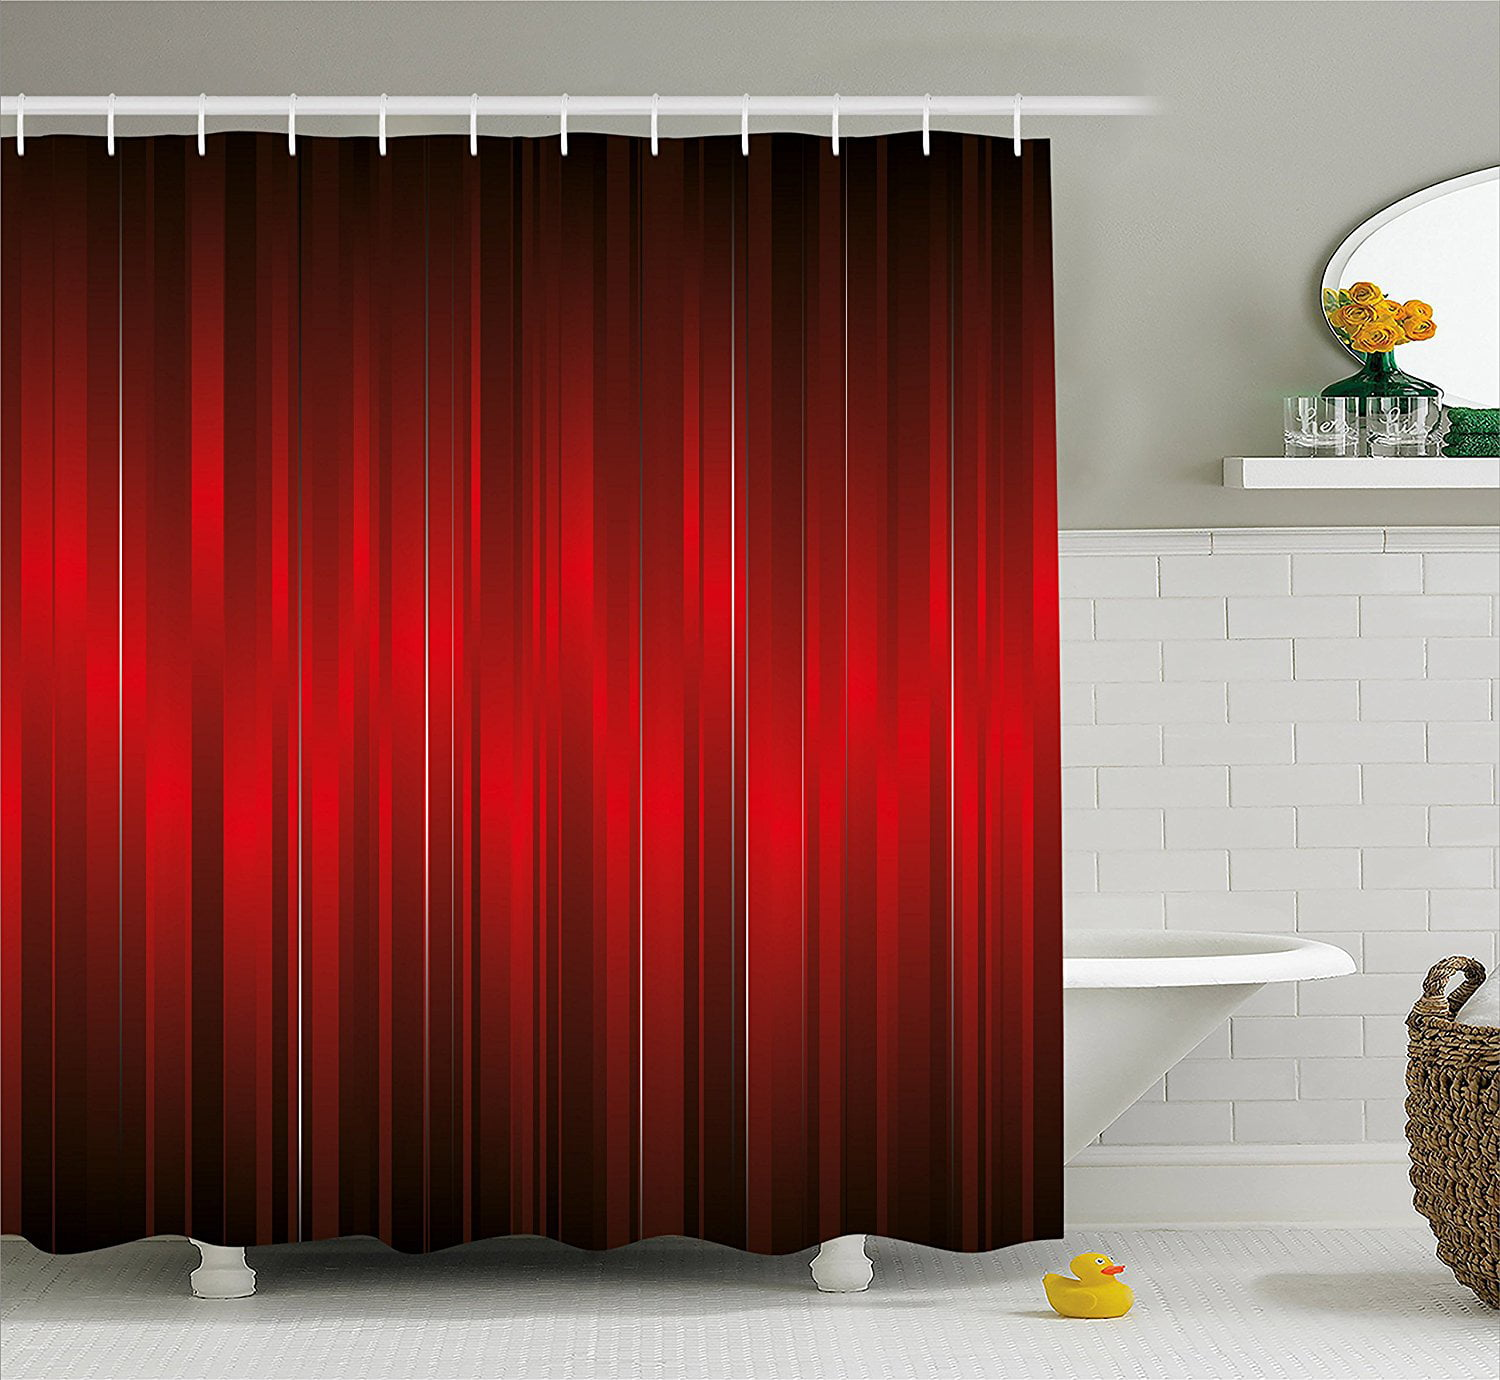 Maroon Shower Curtain By Vibrant Design Of Vertical Color Bands Stripes Vintage Dramatic Pattern Vignette Fabric Bathroom Decor Set With Hooks 84 Inches Extra Long Maroon Black By Ambesonne Walmart Canada